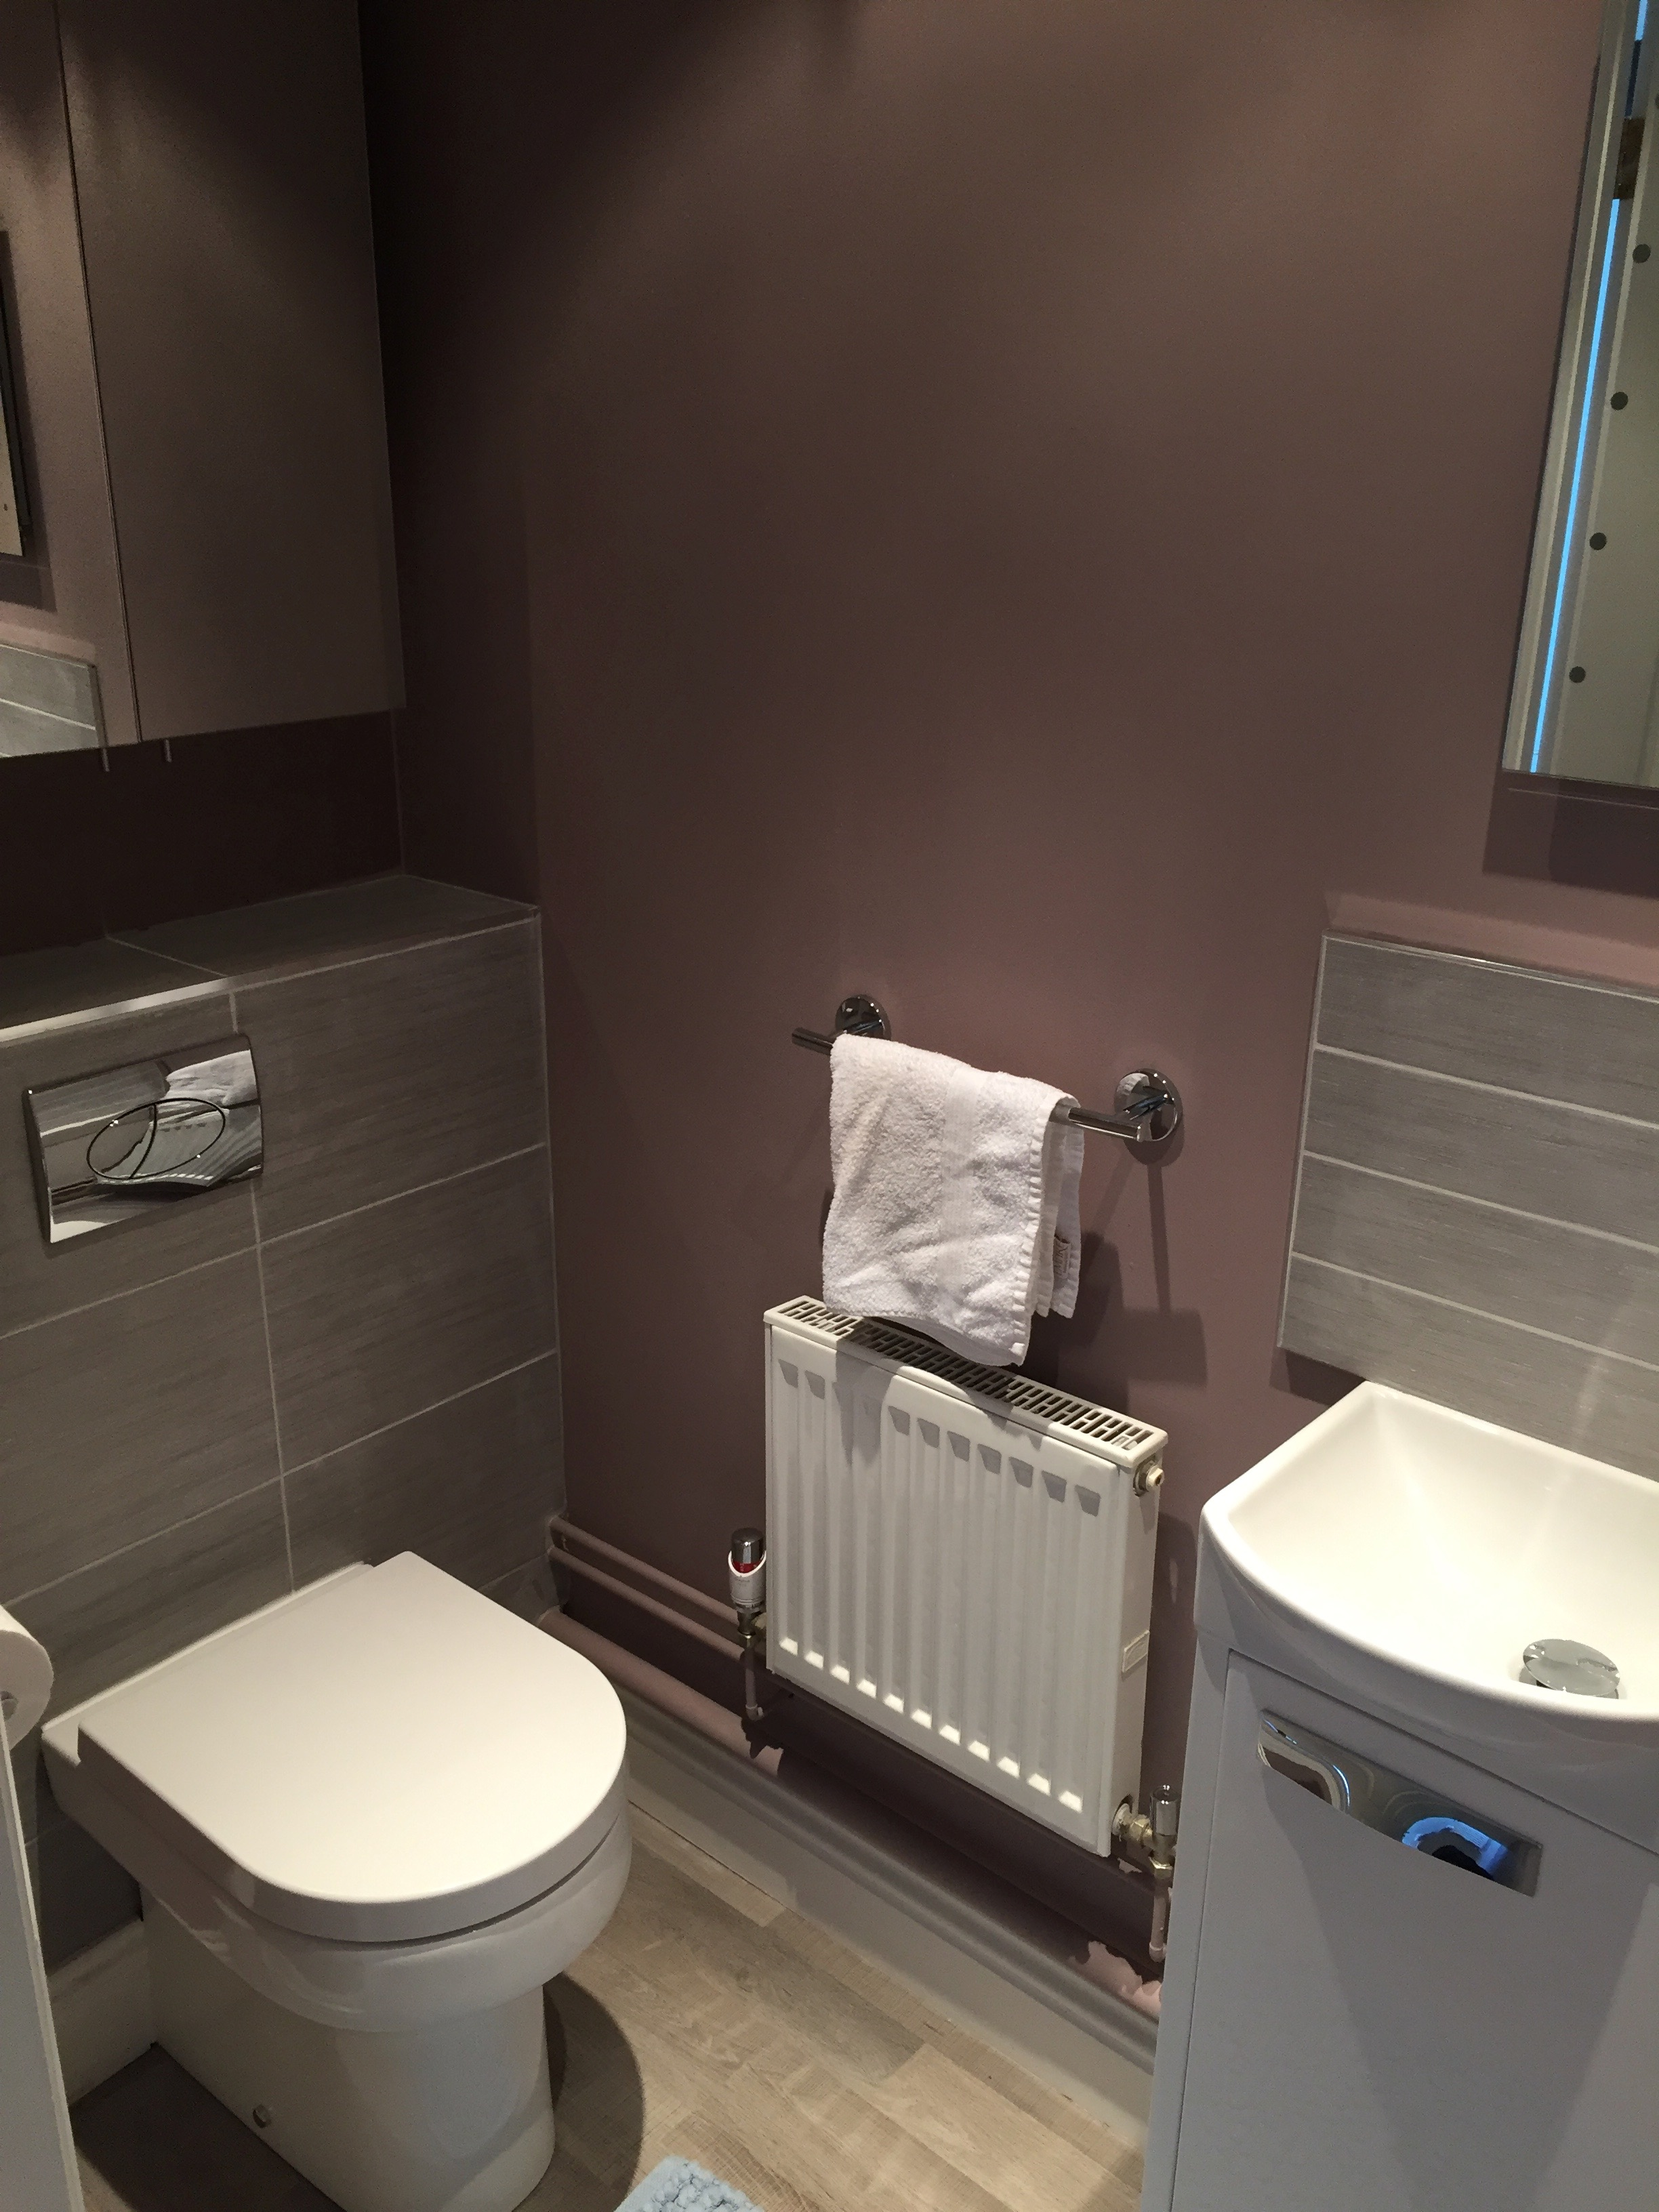 Cloakroom refurbishment